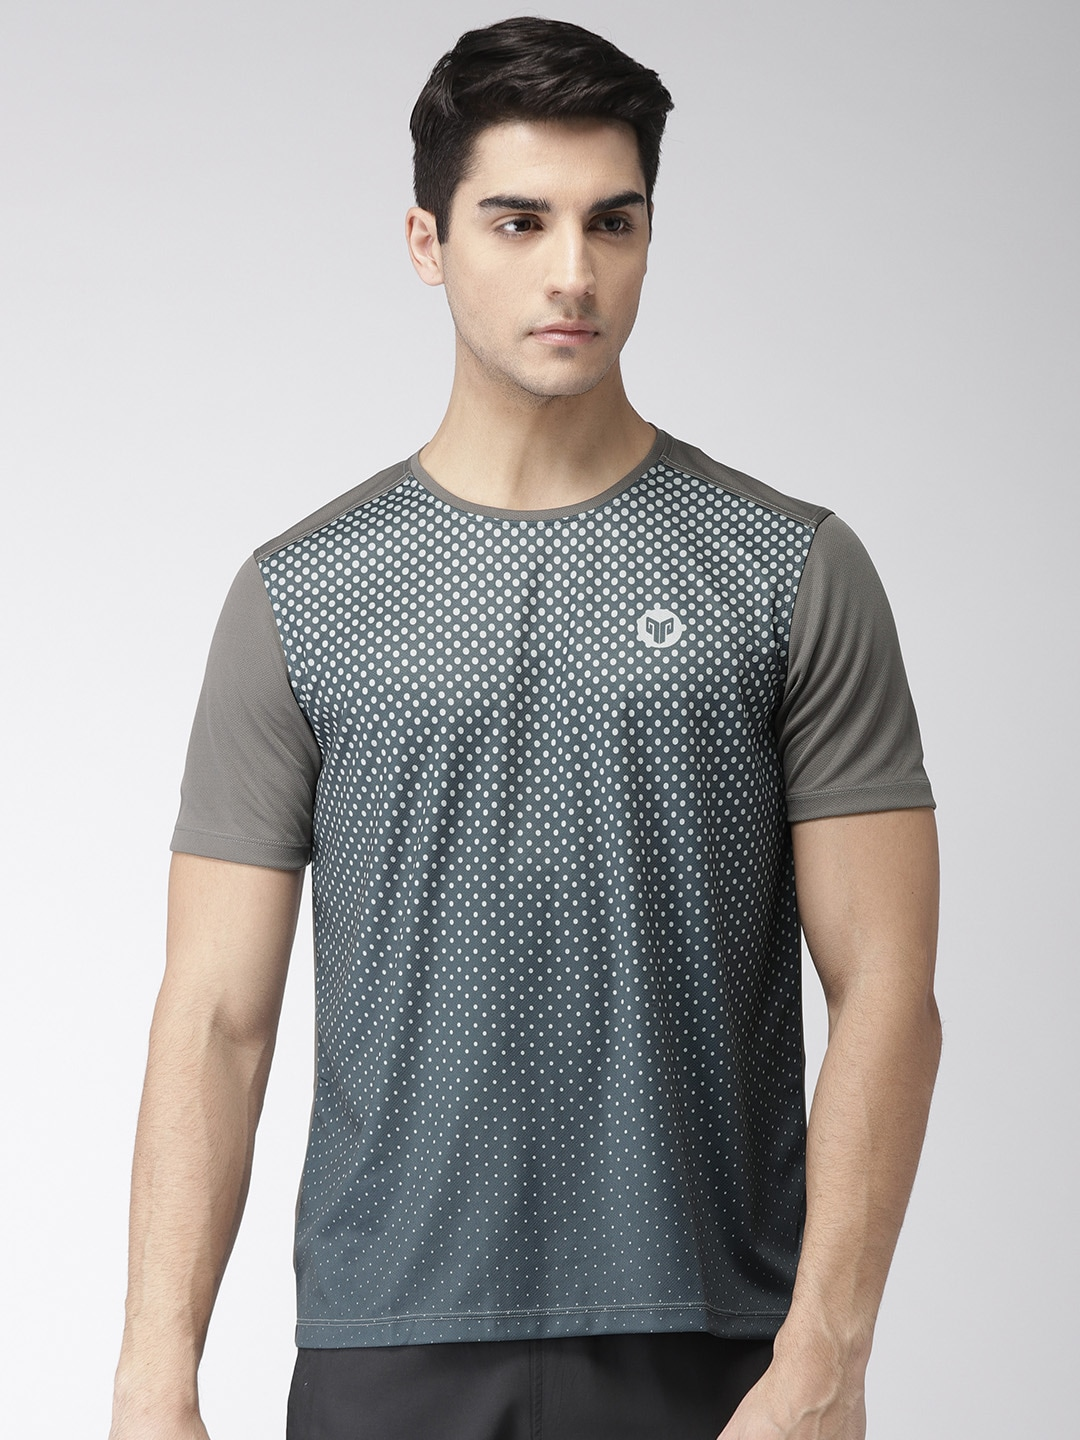 0f90c29c0c8b Dotted Tshirts - Buy Dotted Tshirts online in India